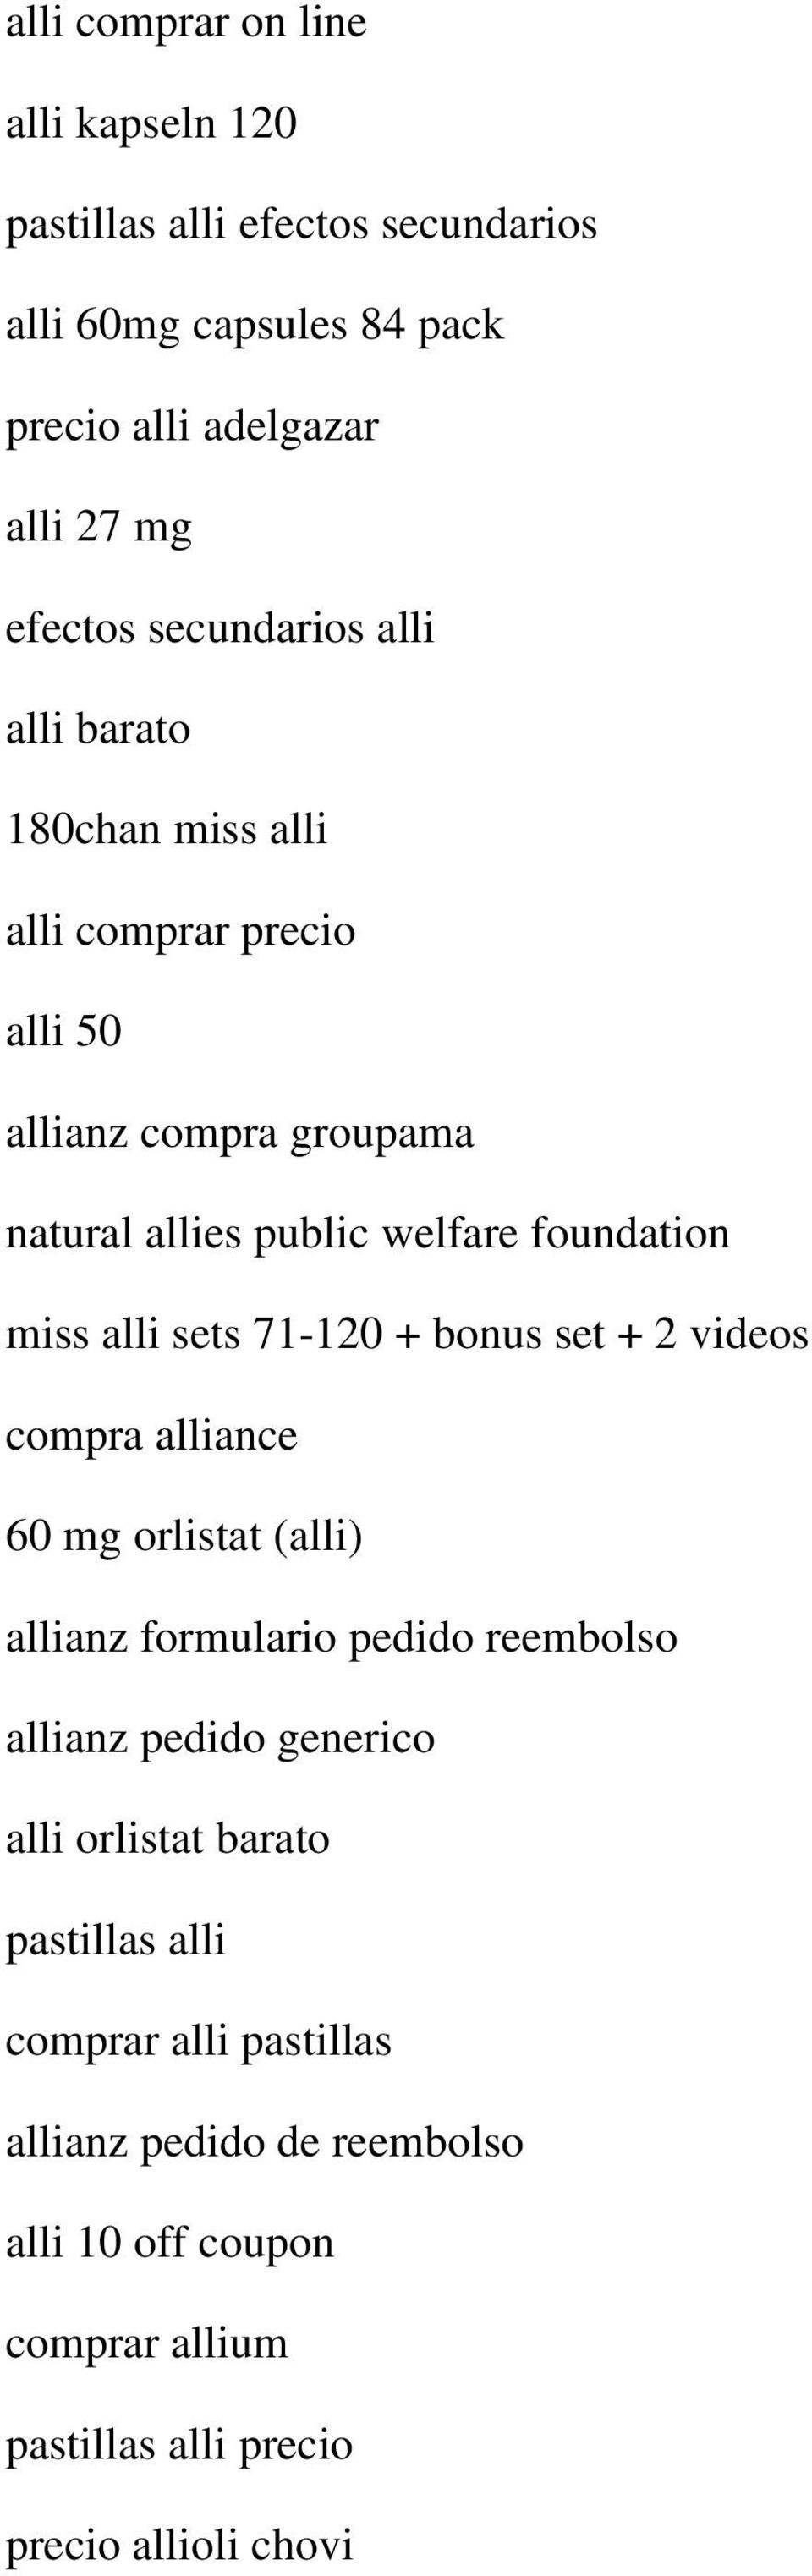 alli sets 71-120 + bonus set + 2 videos compra alliance 60 mg orlistat (alli) allianz formulario pedido reembolso allianz pedido generico alli